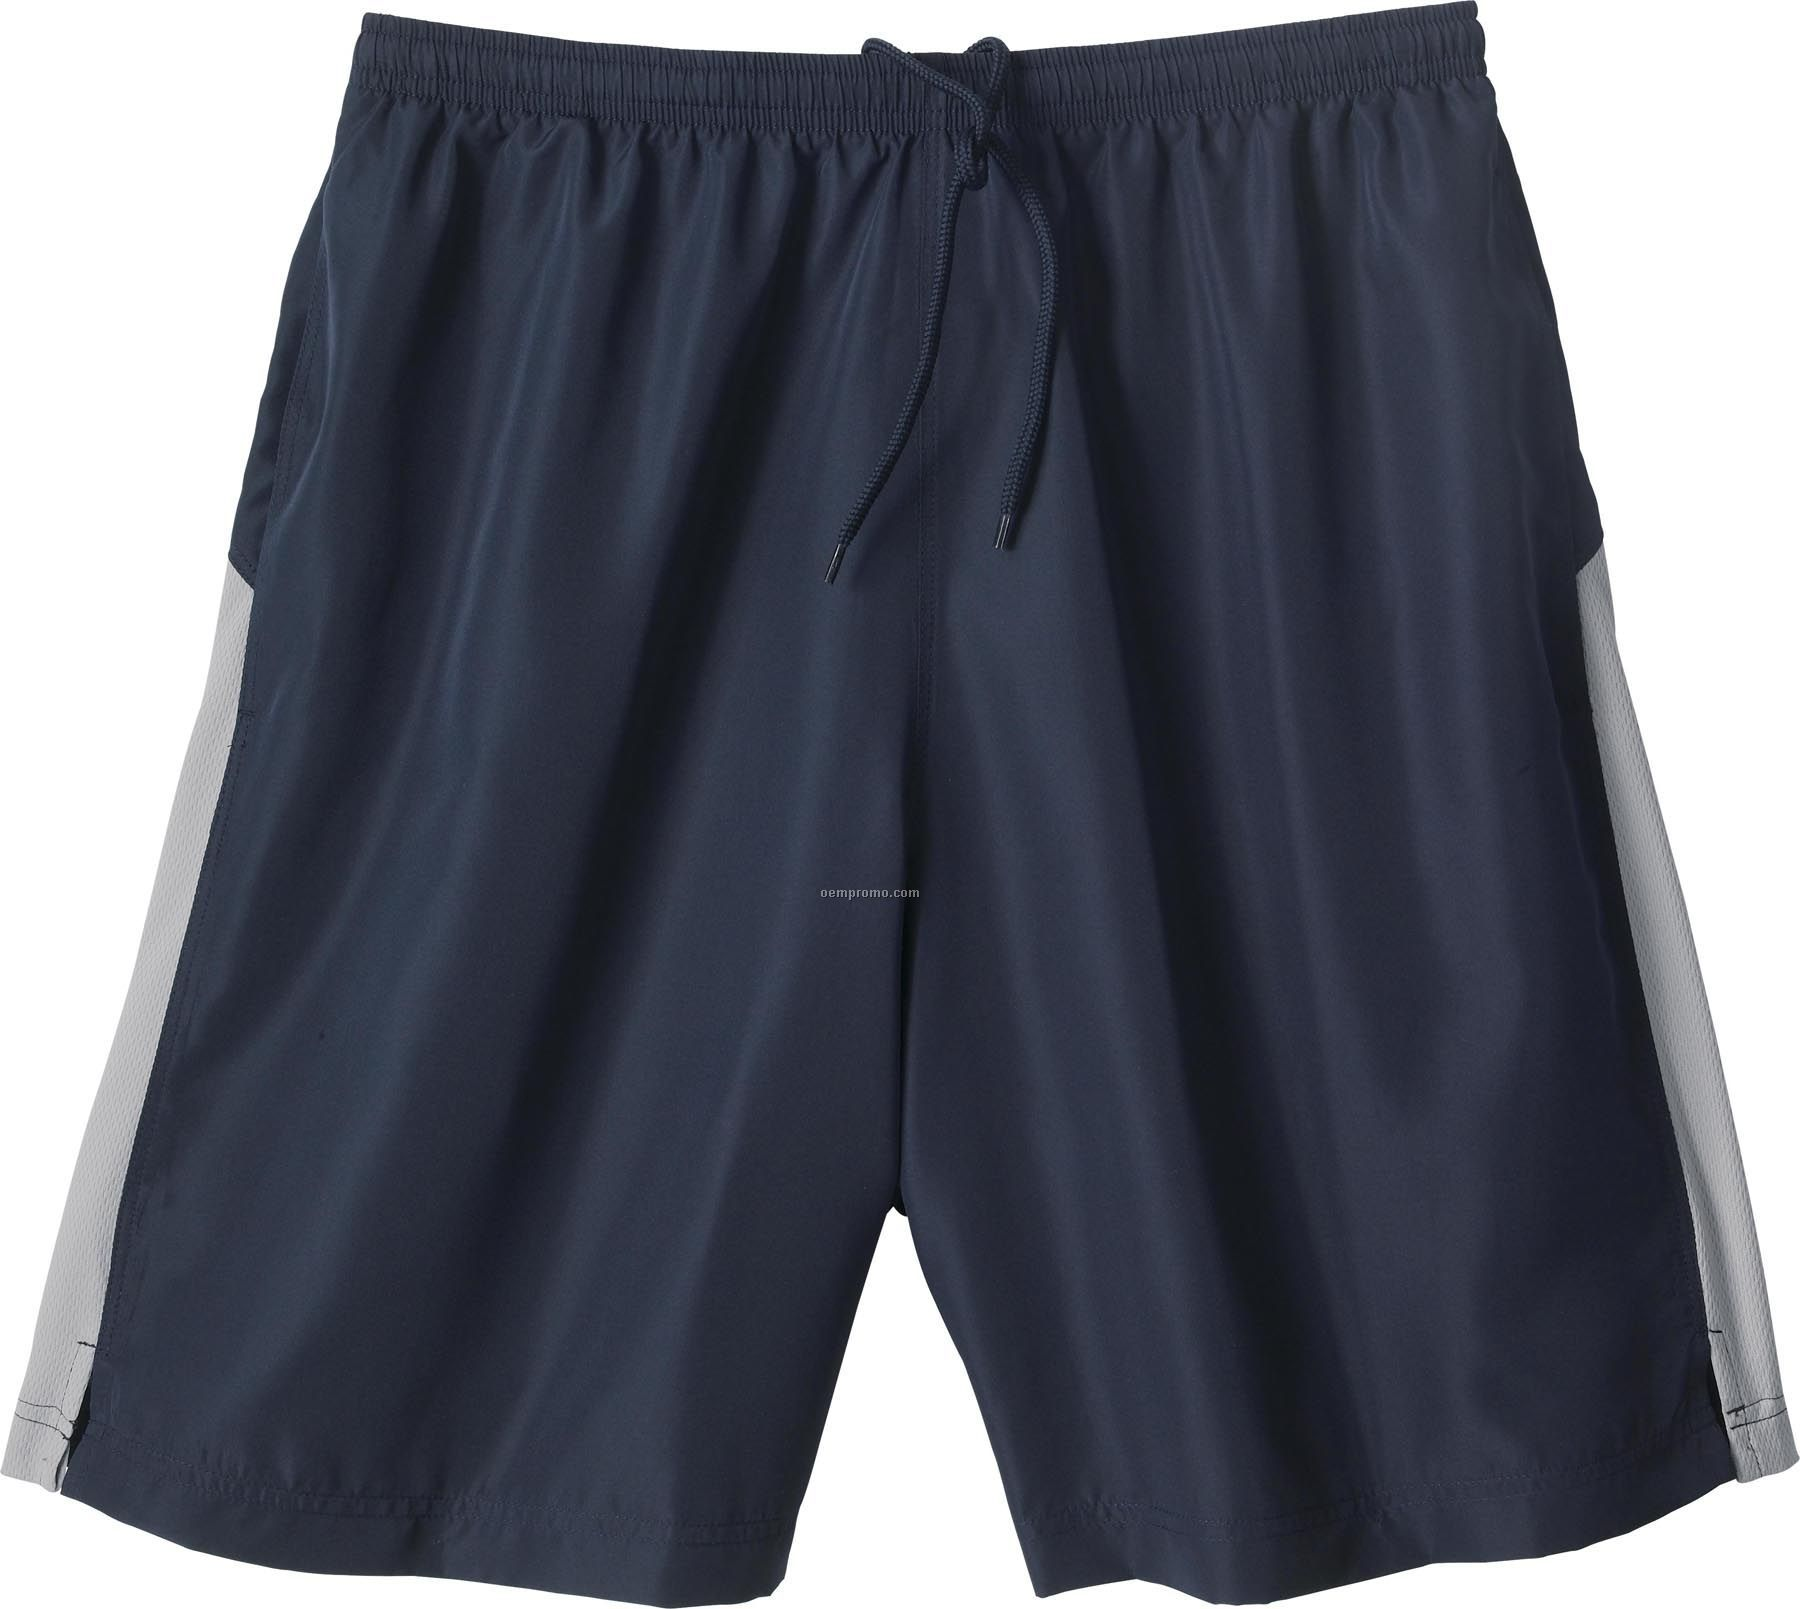 Mens Athletic Shorts Images - Reverse Search